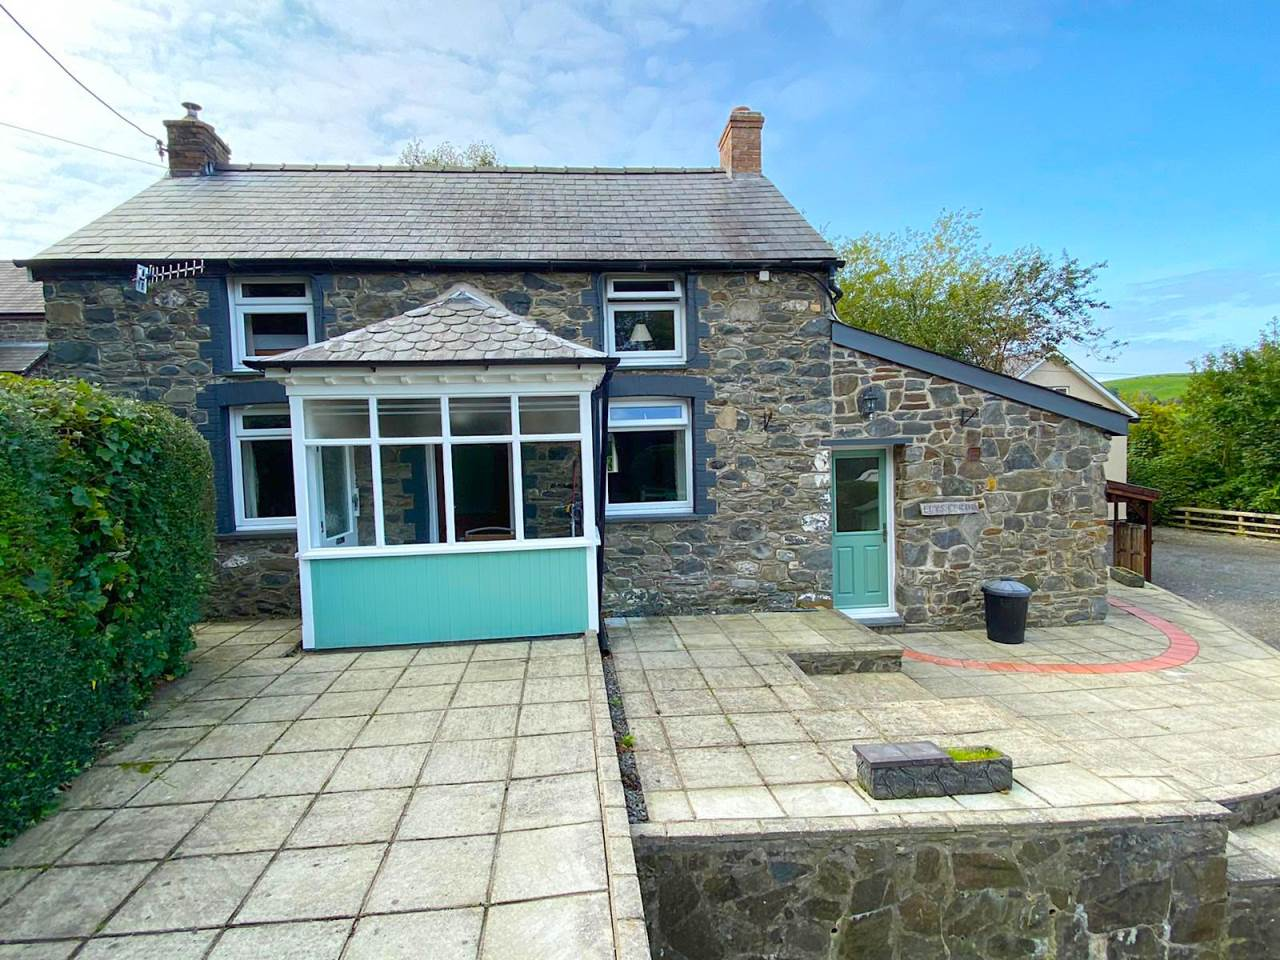 3 bed detached house for sale in Taigwynion, Llandre, SY24